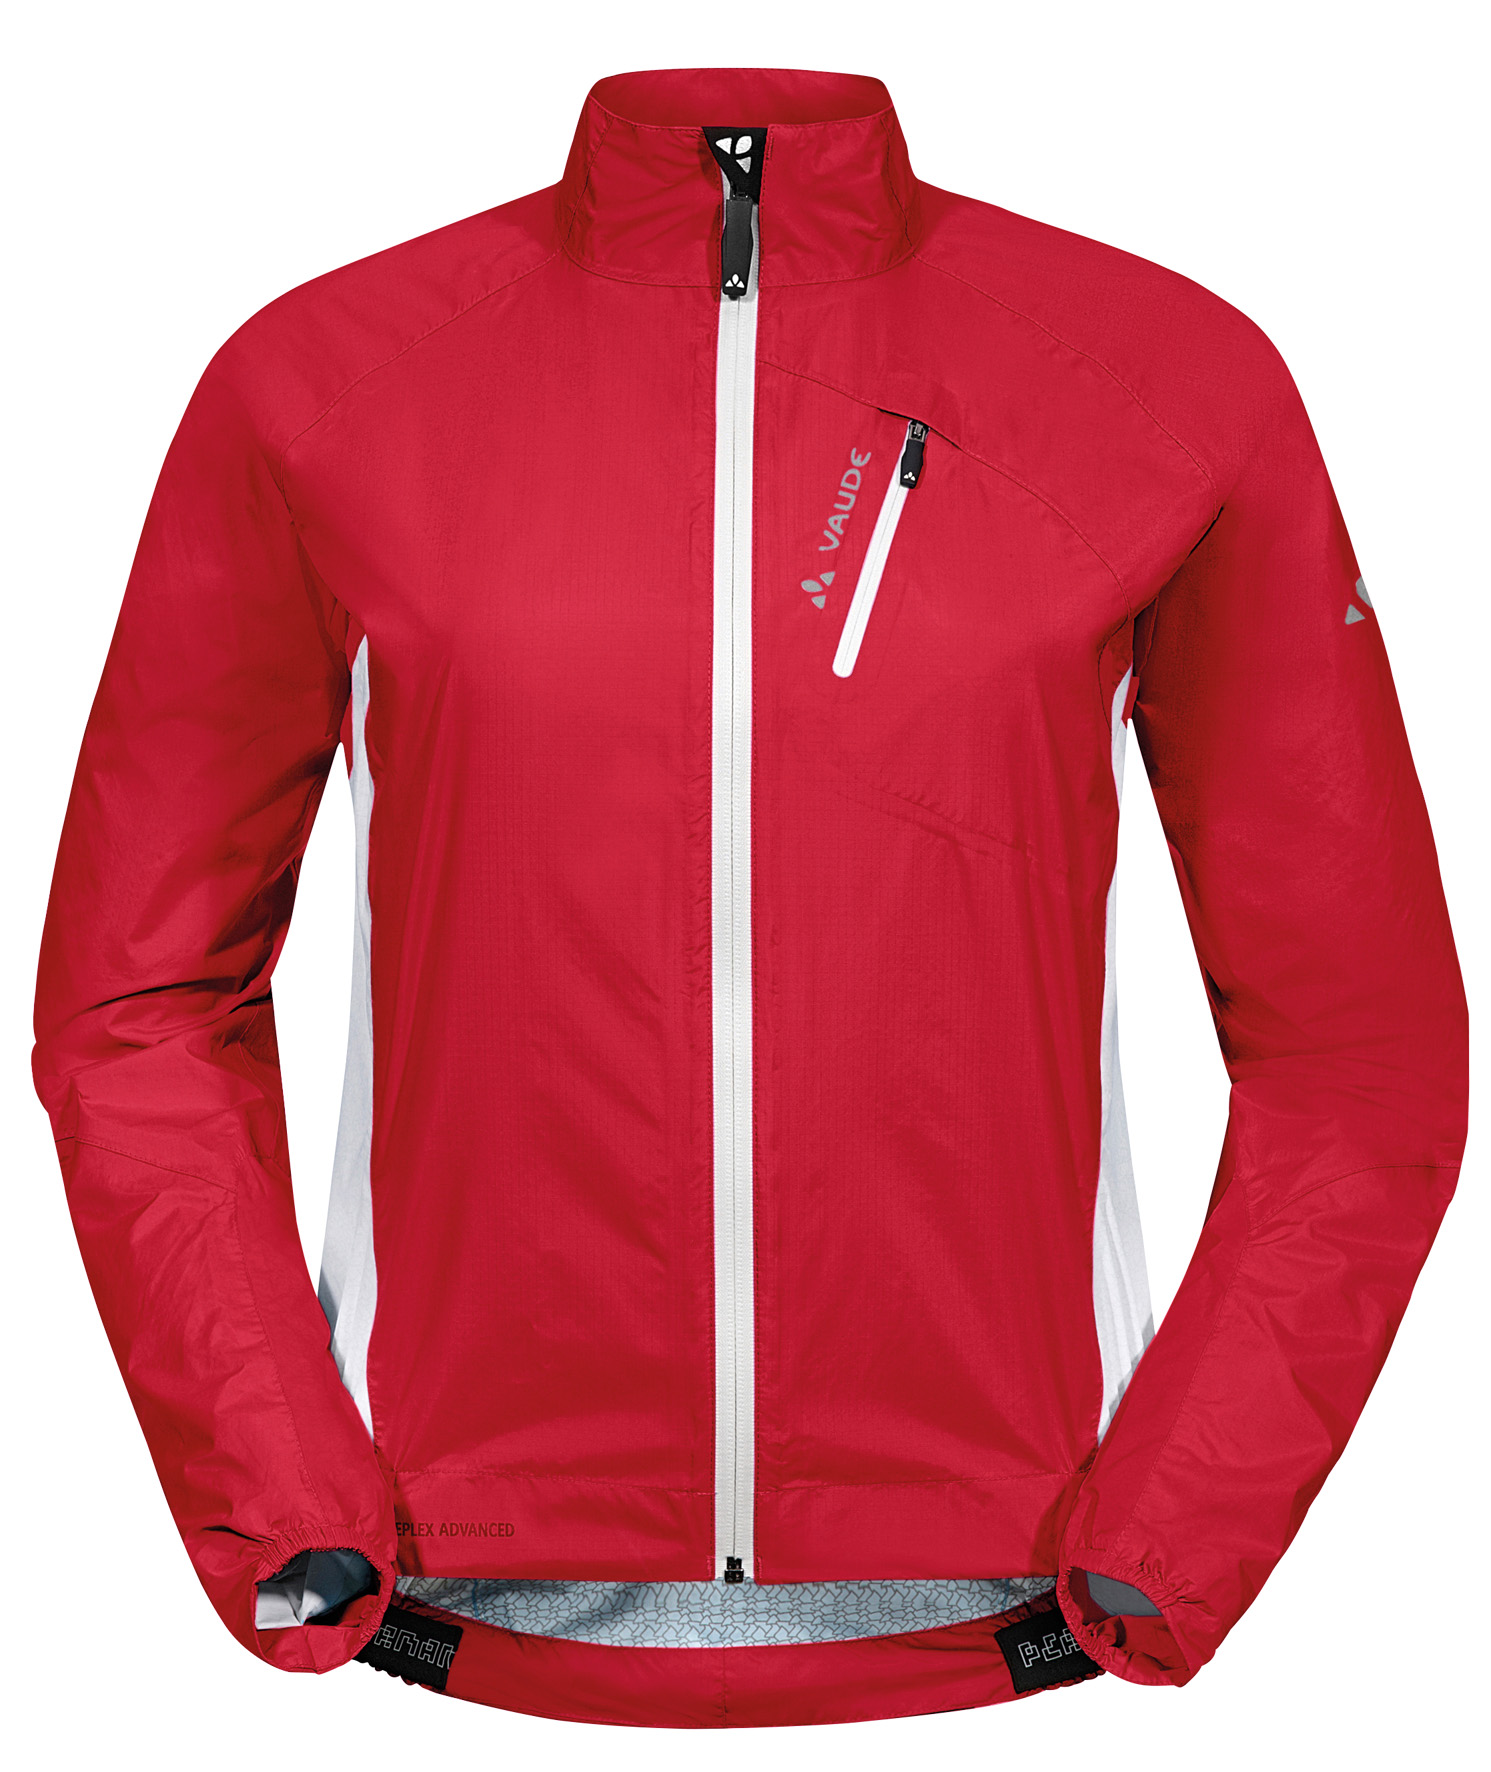 VAUDE Women´s Spray Jacket IV red Größe 36 - schneider-sports